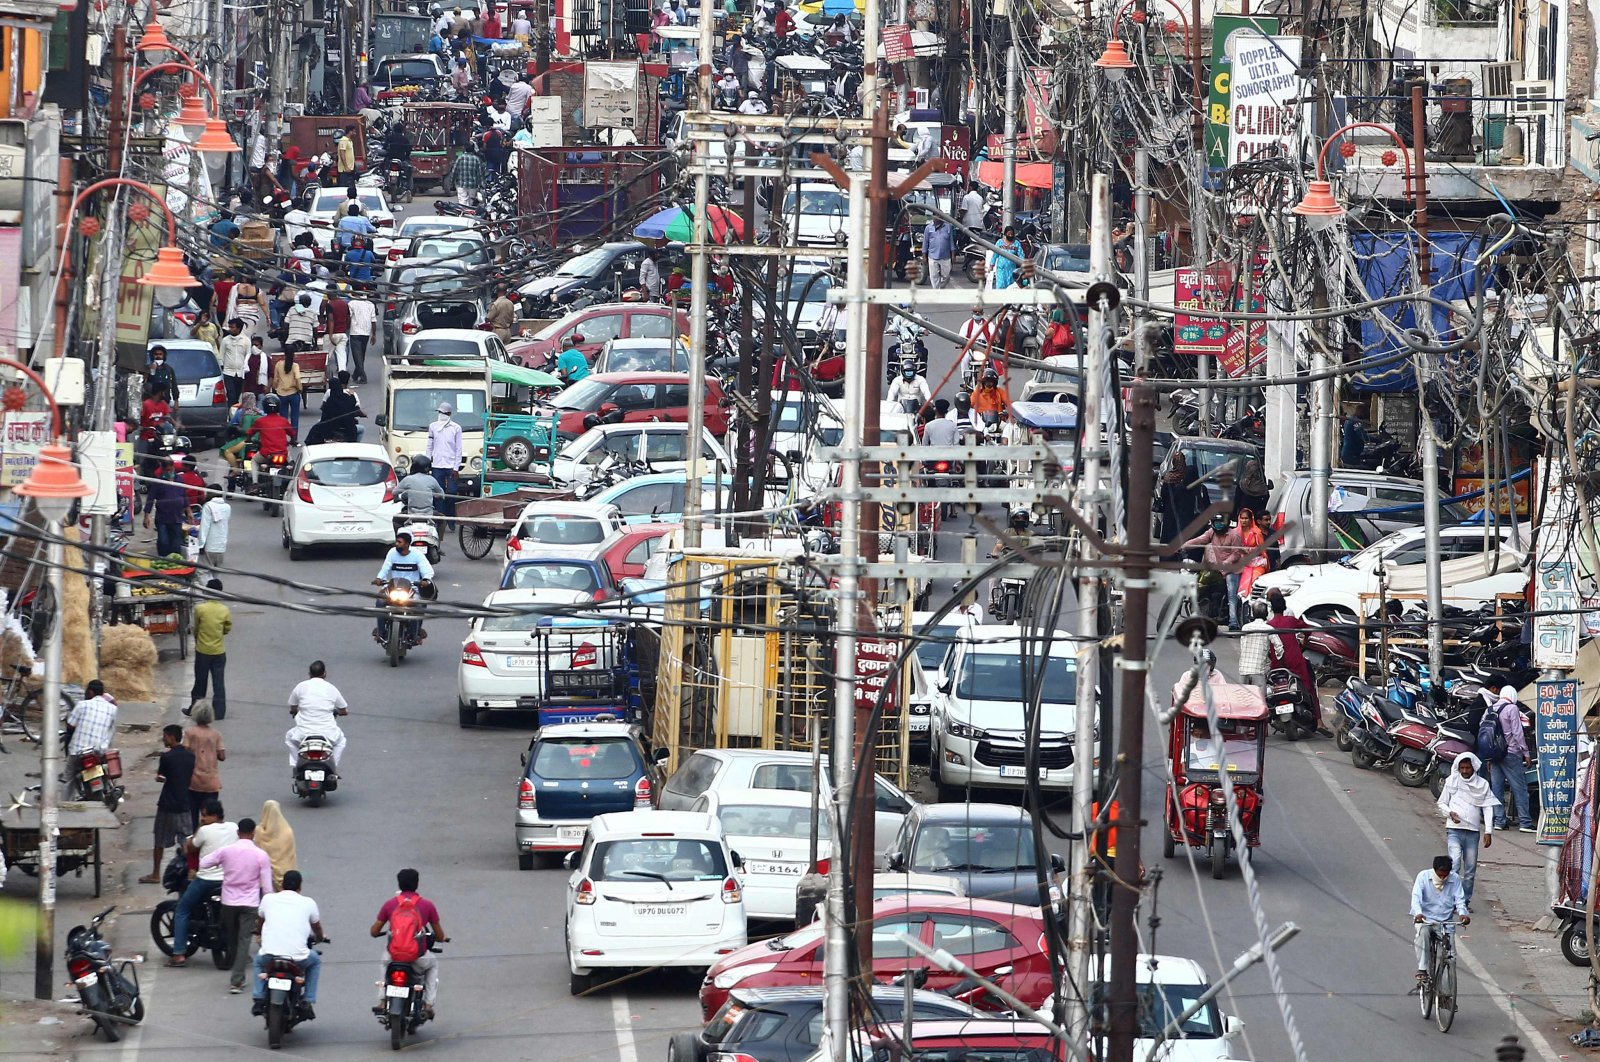 Commuters are seen along a road in the old City Chowk area after the government eased restrictions imposed as a preventive measure against the COVID-19 coronavirus, Allahabad, June 1, 2020. (AFP Photo)